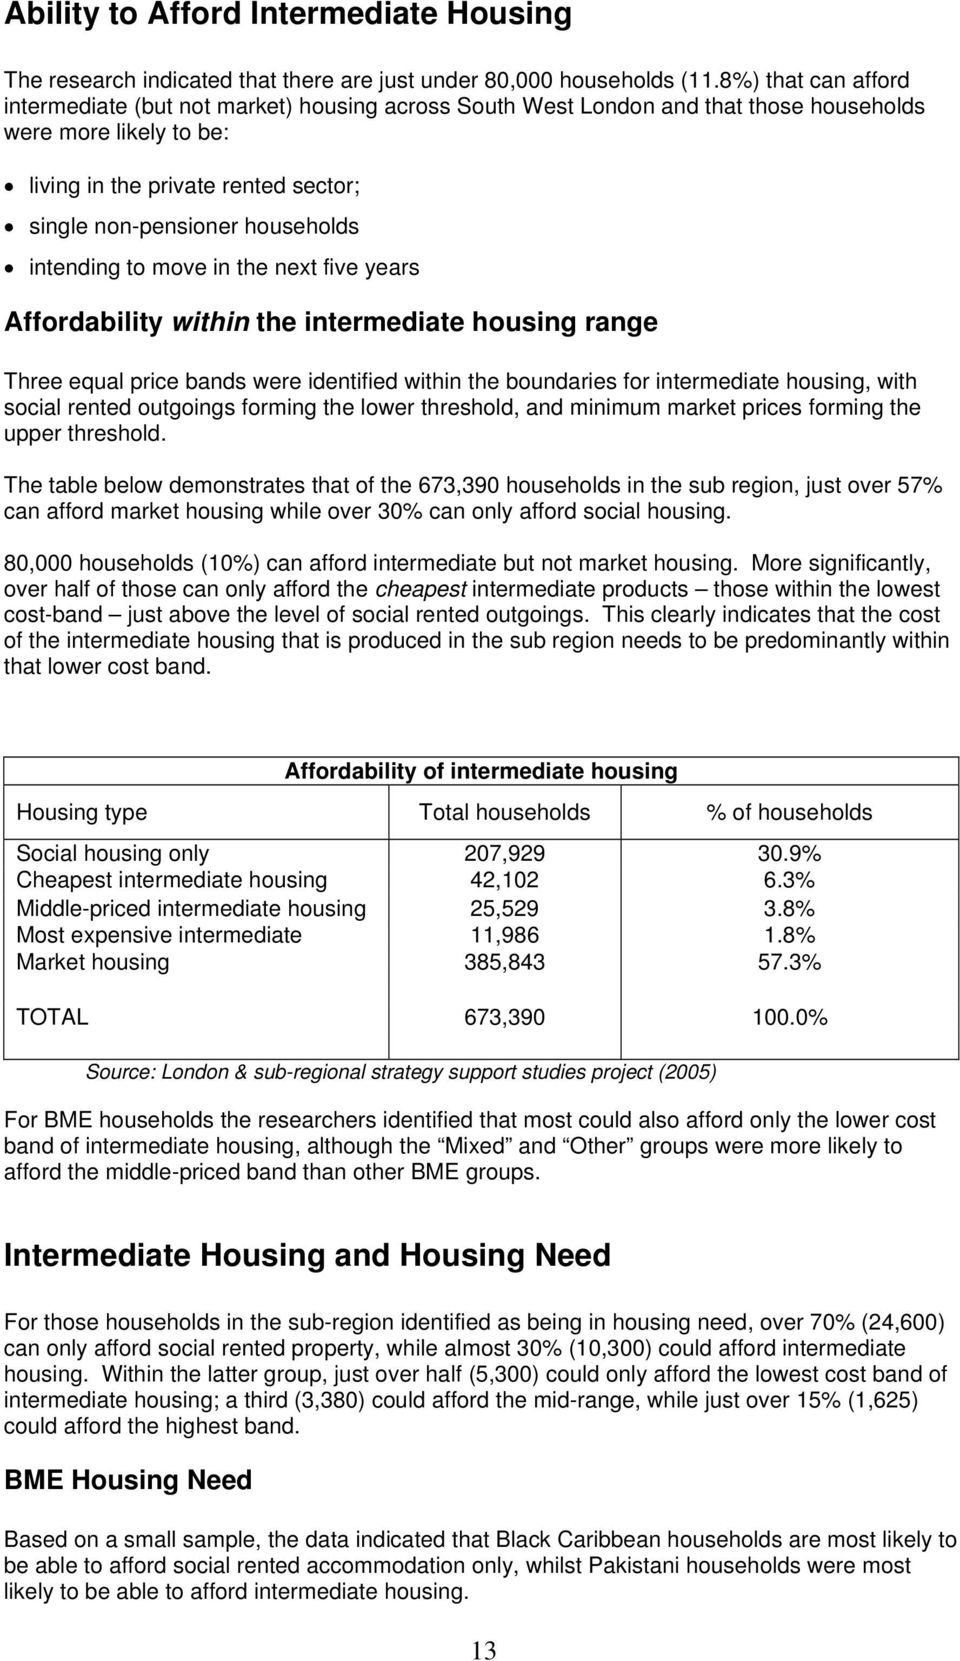 households intending to move in the next five years Affordability within the intermediate housing range Three equal price bands were identified within the boundaries for intermediate housing, with